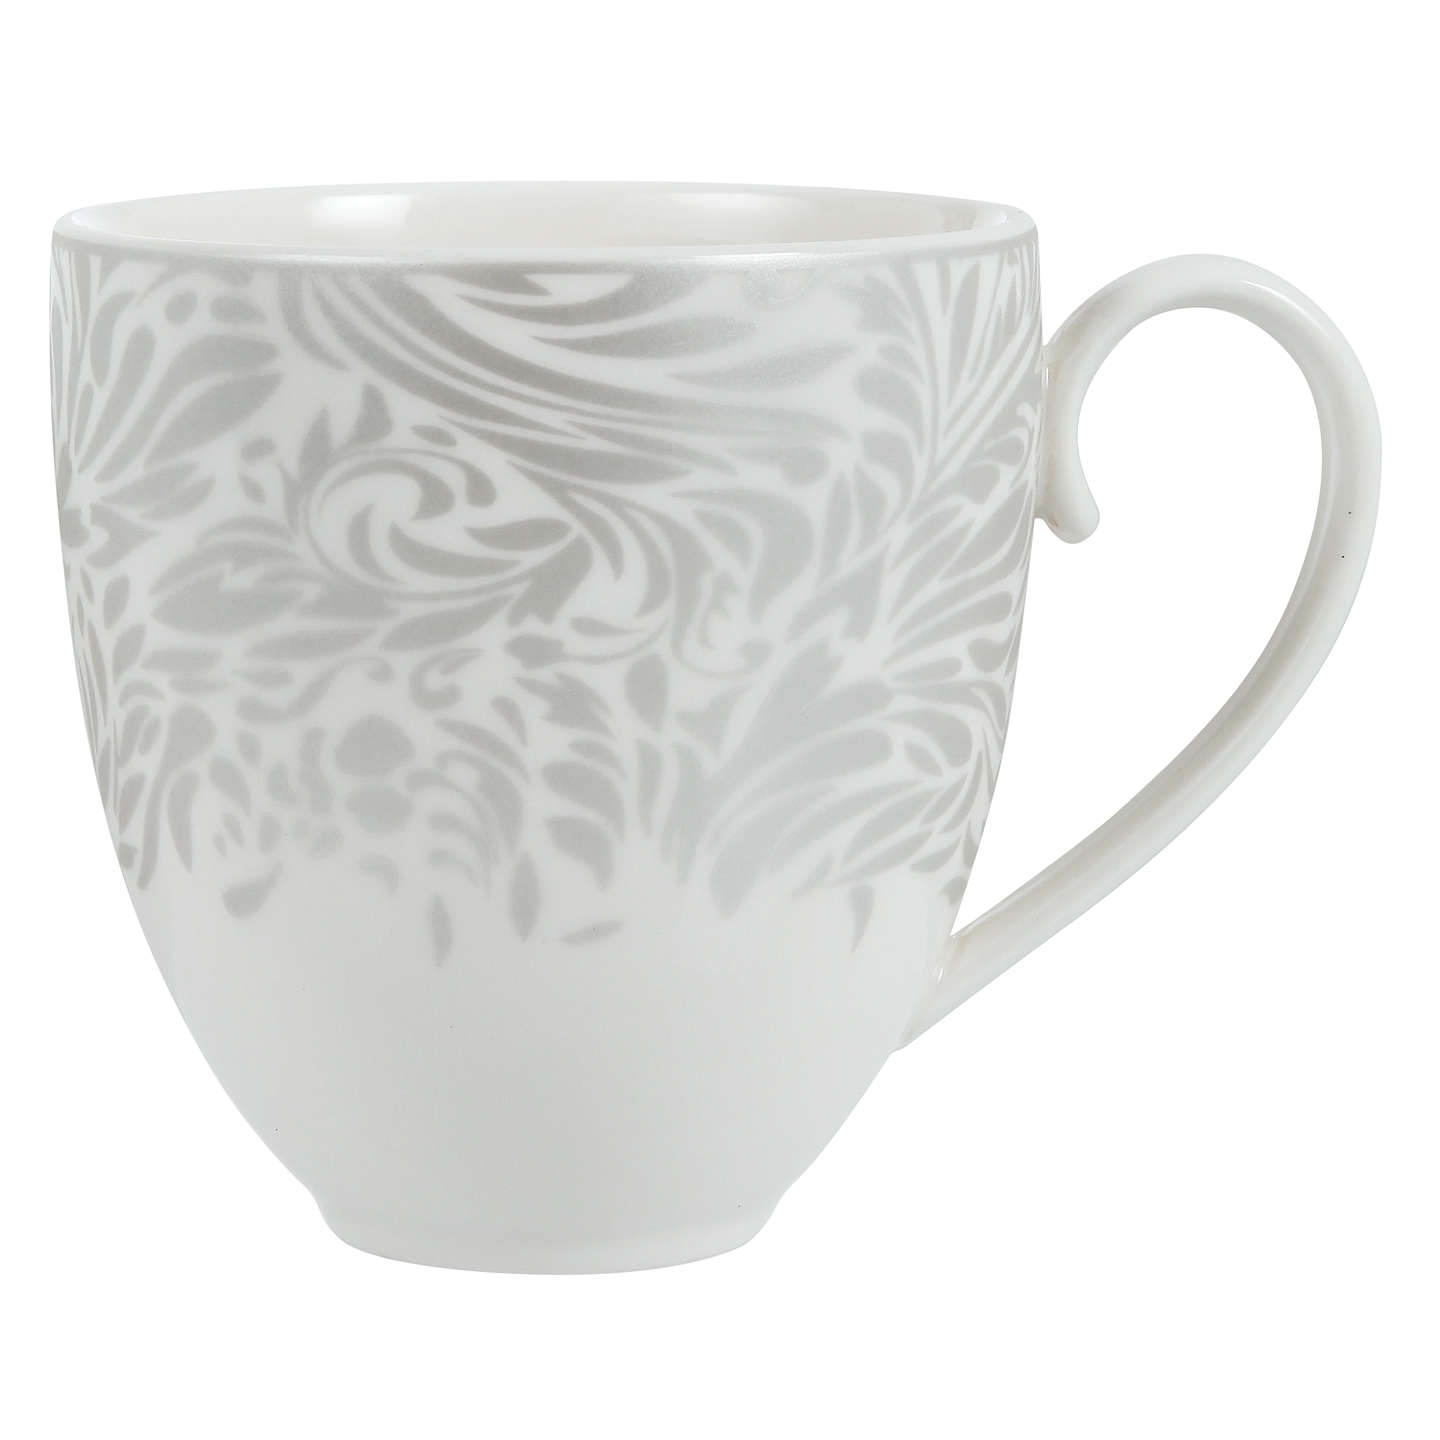 BuyDenby Monsoon Lucille Mug Silver Online at johnlewis.com ...  sc 1 st  John Lewis & Denby Monsoon Lucille Mug Silver at John Lewis